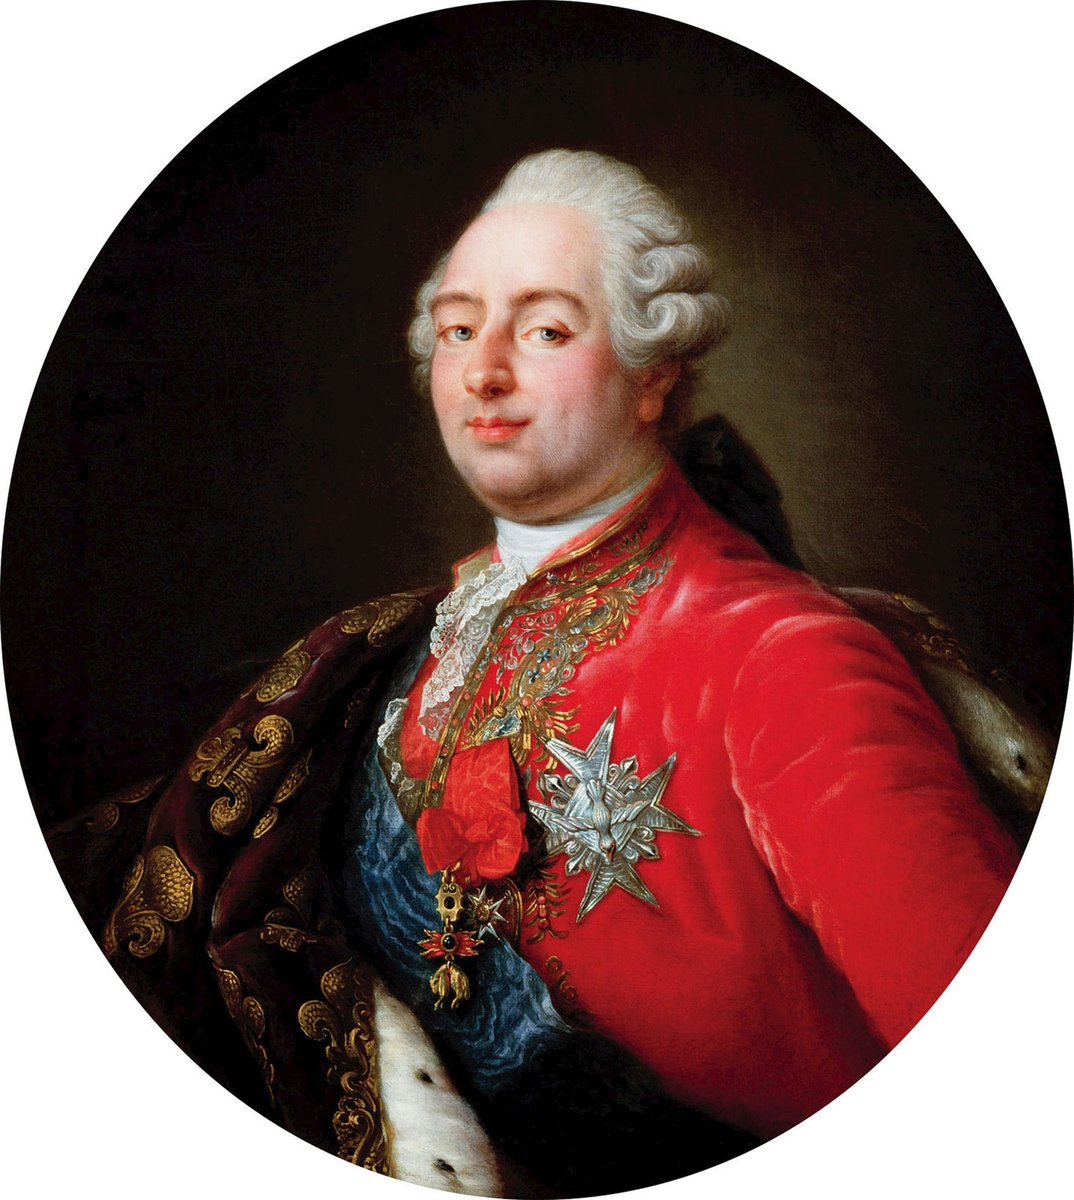 21 January 1793-Louis XVI, King of France, is executed during the French Revolution for high treason. Condemned to death by a majority of only 1 vote, Louis was taken to Place de la Rèvolution where he was beheaded by guillotine. He was only 38. #OTD #History #FrenchRevolution